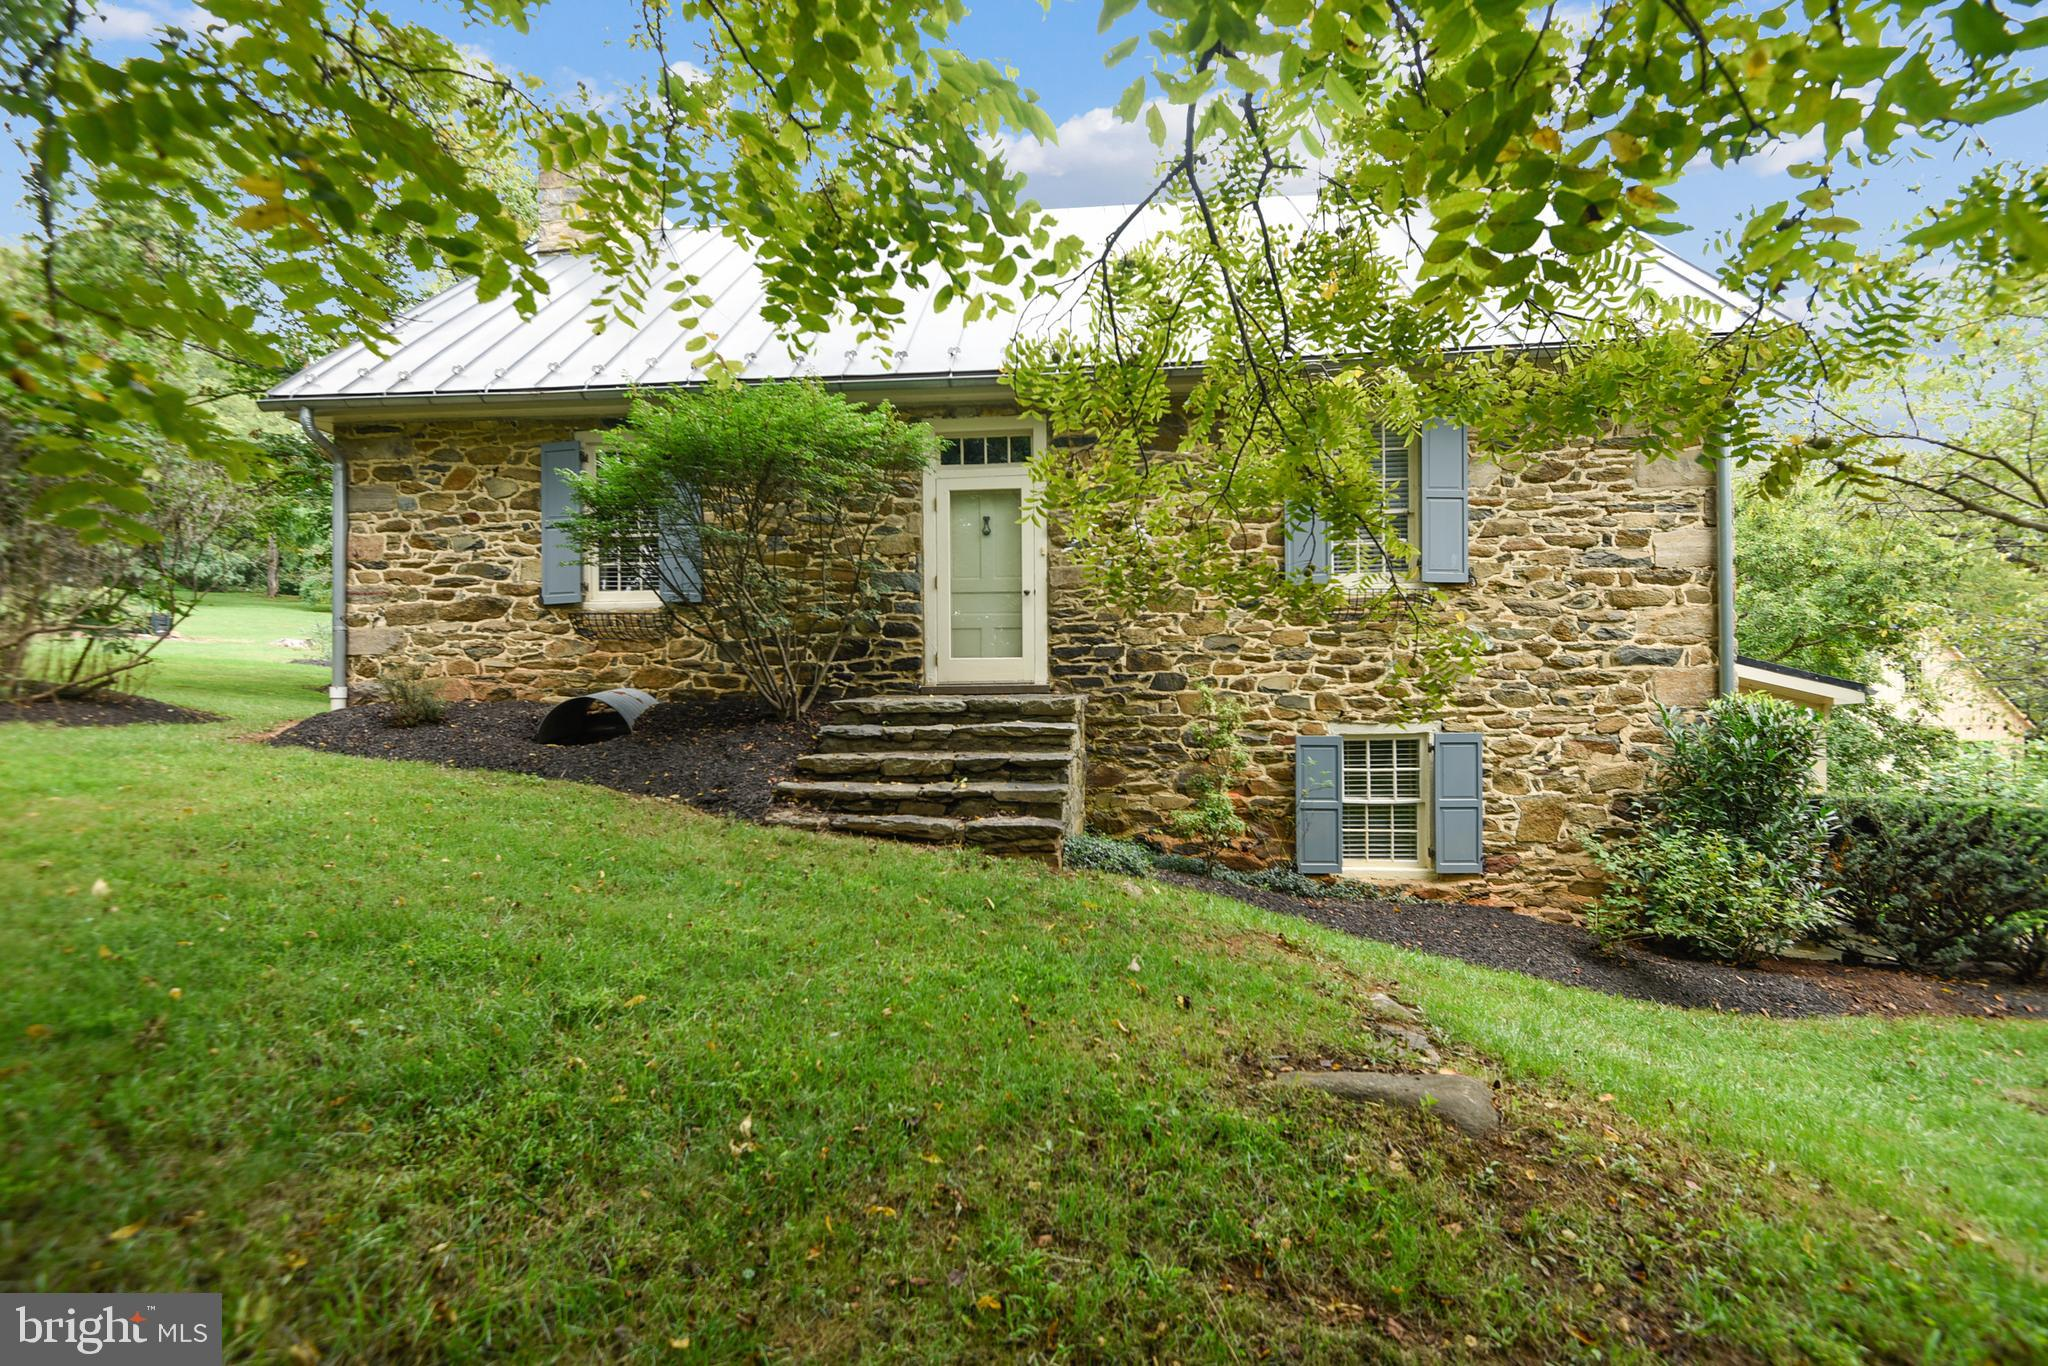 """Take a step back in time as you view this historic property built in the 1780's. Let the sounds of nature surround you as you explore to catch a glimpse of secluded spaces that beg to be enjoyed. Many added features and updates demonstrate the loving care of those entrusted with its stewardship.  In 1995, the present homeowners had extensive renovations completed and an addition put on the back of the original stone house.  Their goal was to preserve the historical aesthetics and maintain the integrity of the property while adding tasteful improvements for twenty-first century convenience.  The main and upper level of the original structure has been handsomely preserved.  The home offers four bedrooms (with potential for a fifth bedroom), and three full bathrooms.  The original kitchen and root cellar on the lower level have been converted to family and dining space and a wonderfully inviting kitchen.  Main and upper level patios and balconies at the rear of the addition give you views of the stunning acreage and outbuildings.  The home sits on a 15-acre parcel with beautiful landscaping, pebble walkways and stone walls.    The original summer kitchen with loft remains.  Oversized two-car garage with hay loft and electricity offers additional space.  Outbuildings include corncrib, one-story barn with original stone foundation, forty-foot pole barn on concrete slab, machine shed, and spring house sold """"as is""""."""